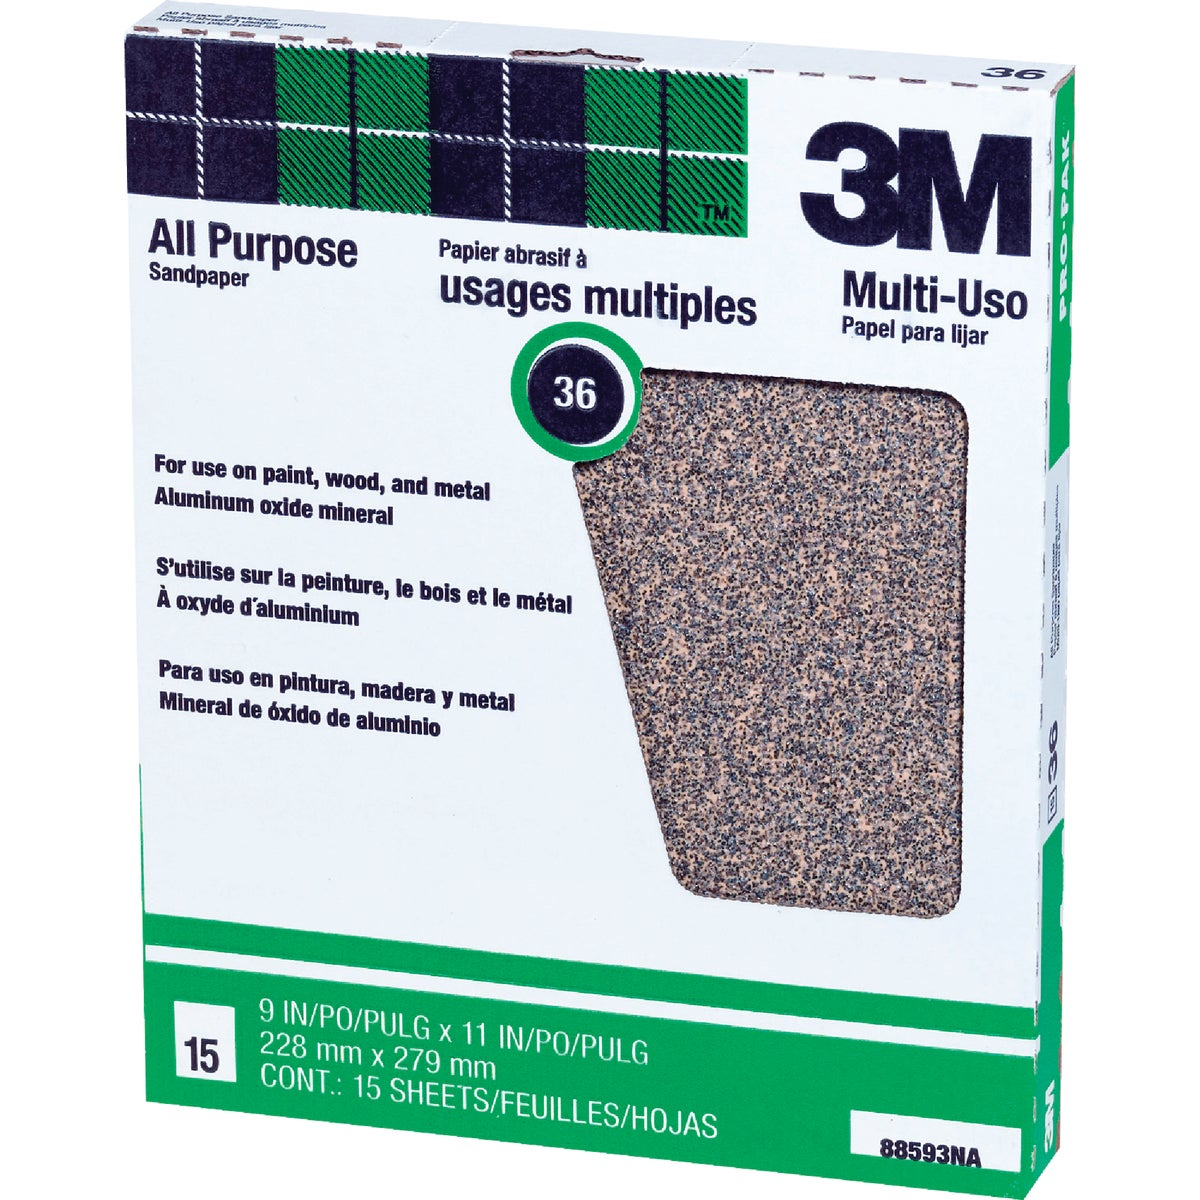 36D PRODUCTION SANDPAPER - 88593NA by 3m Co